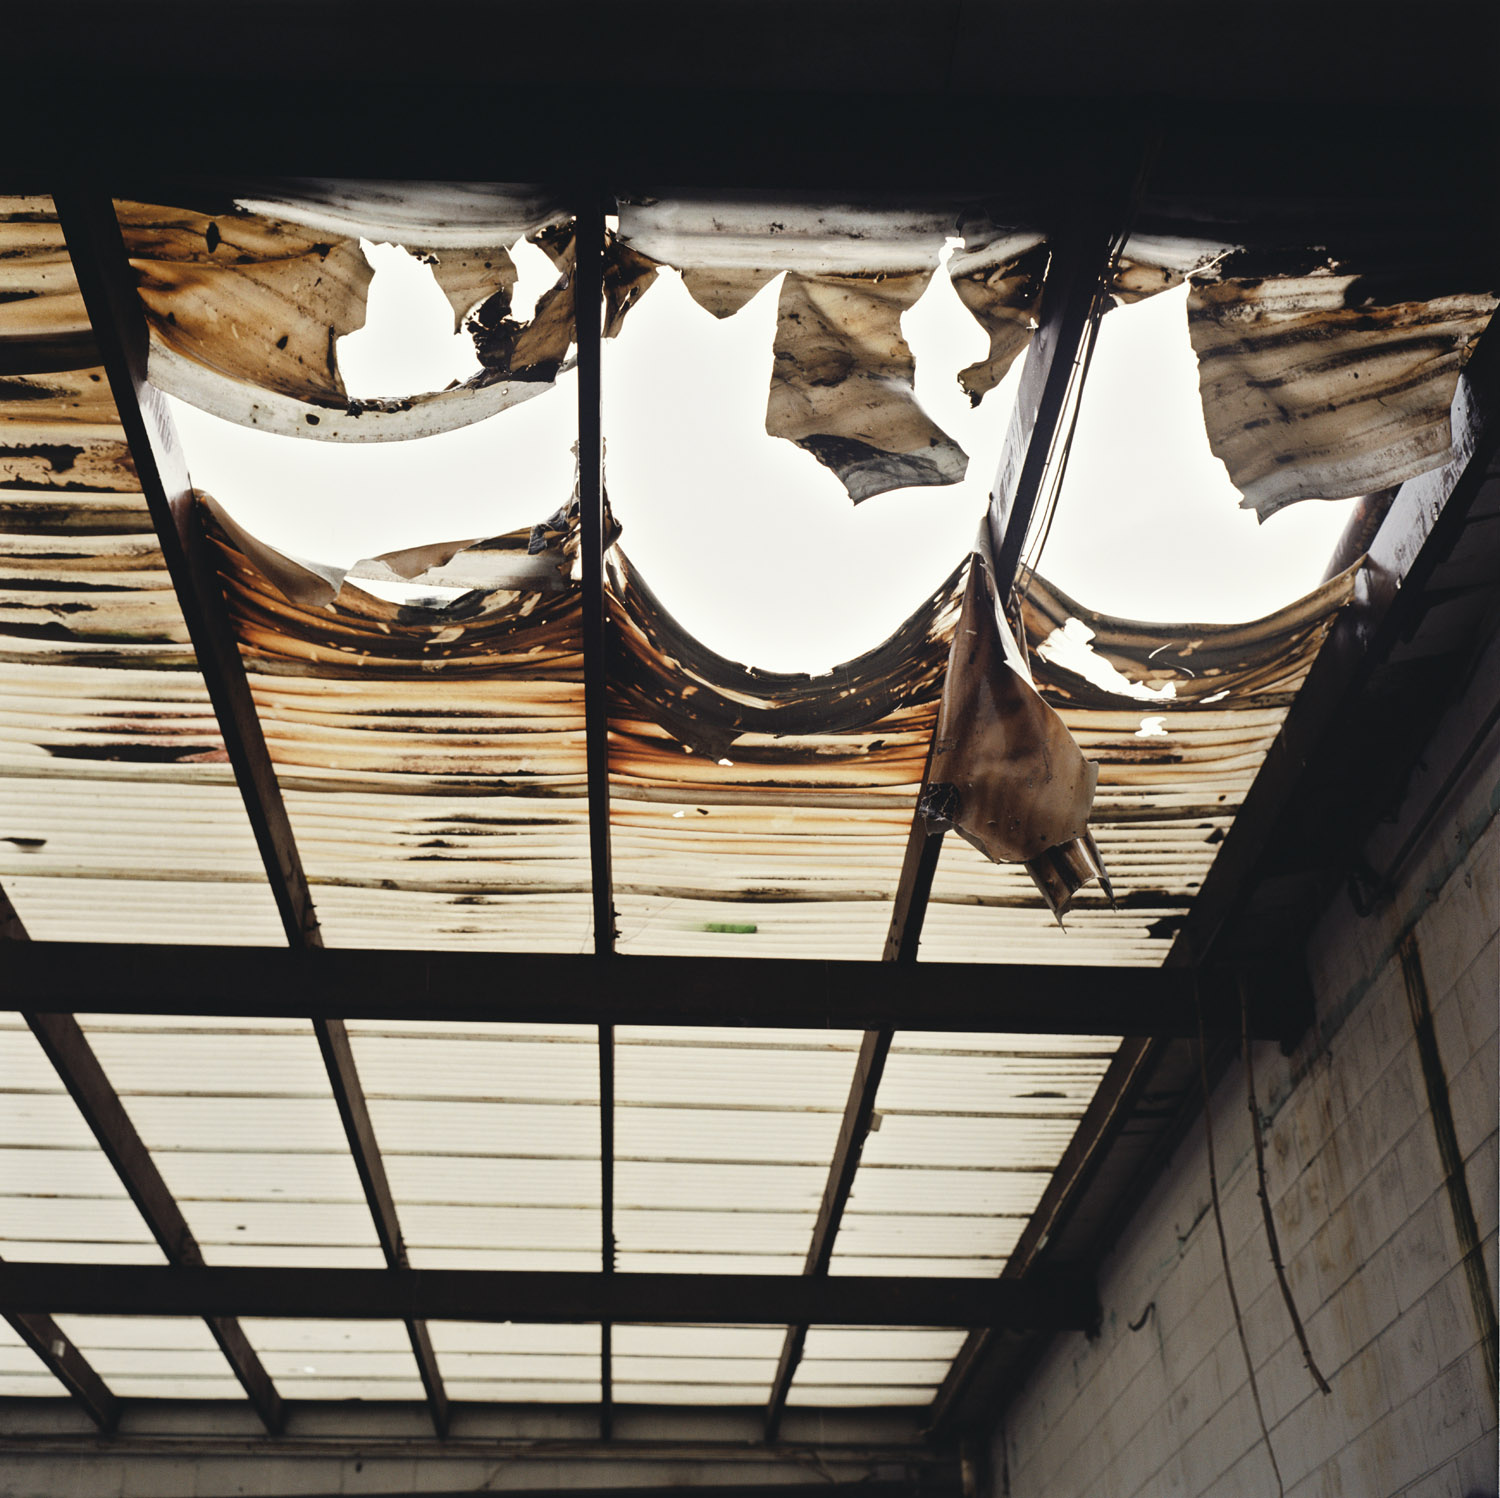 Roof, From The Series Observer By Abby Storey.